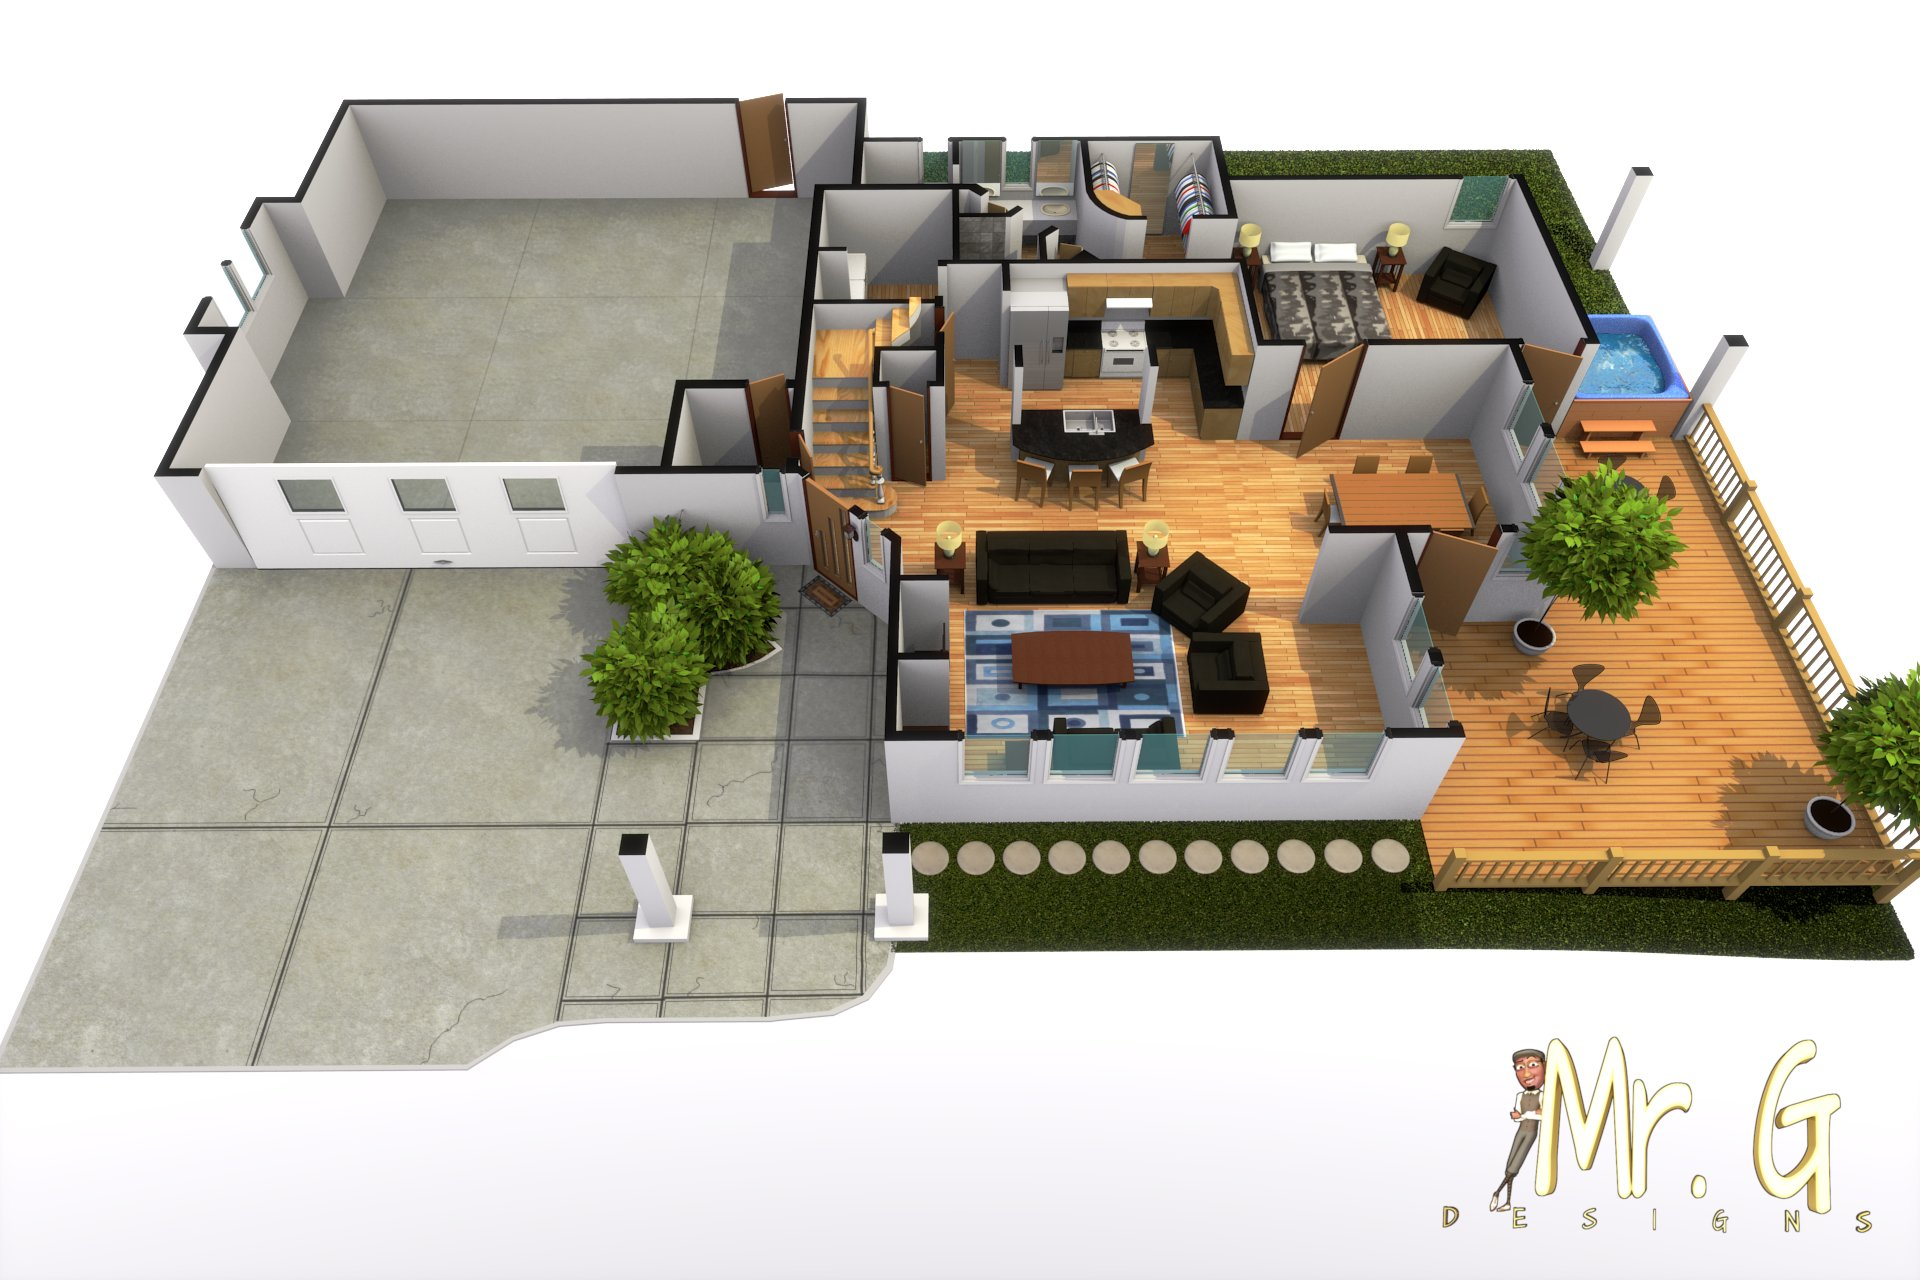 Garrett s modern house 003 final2